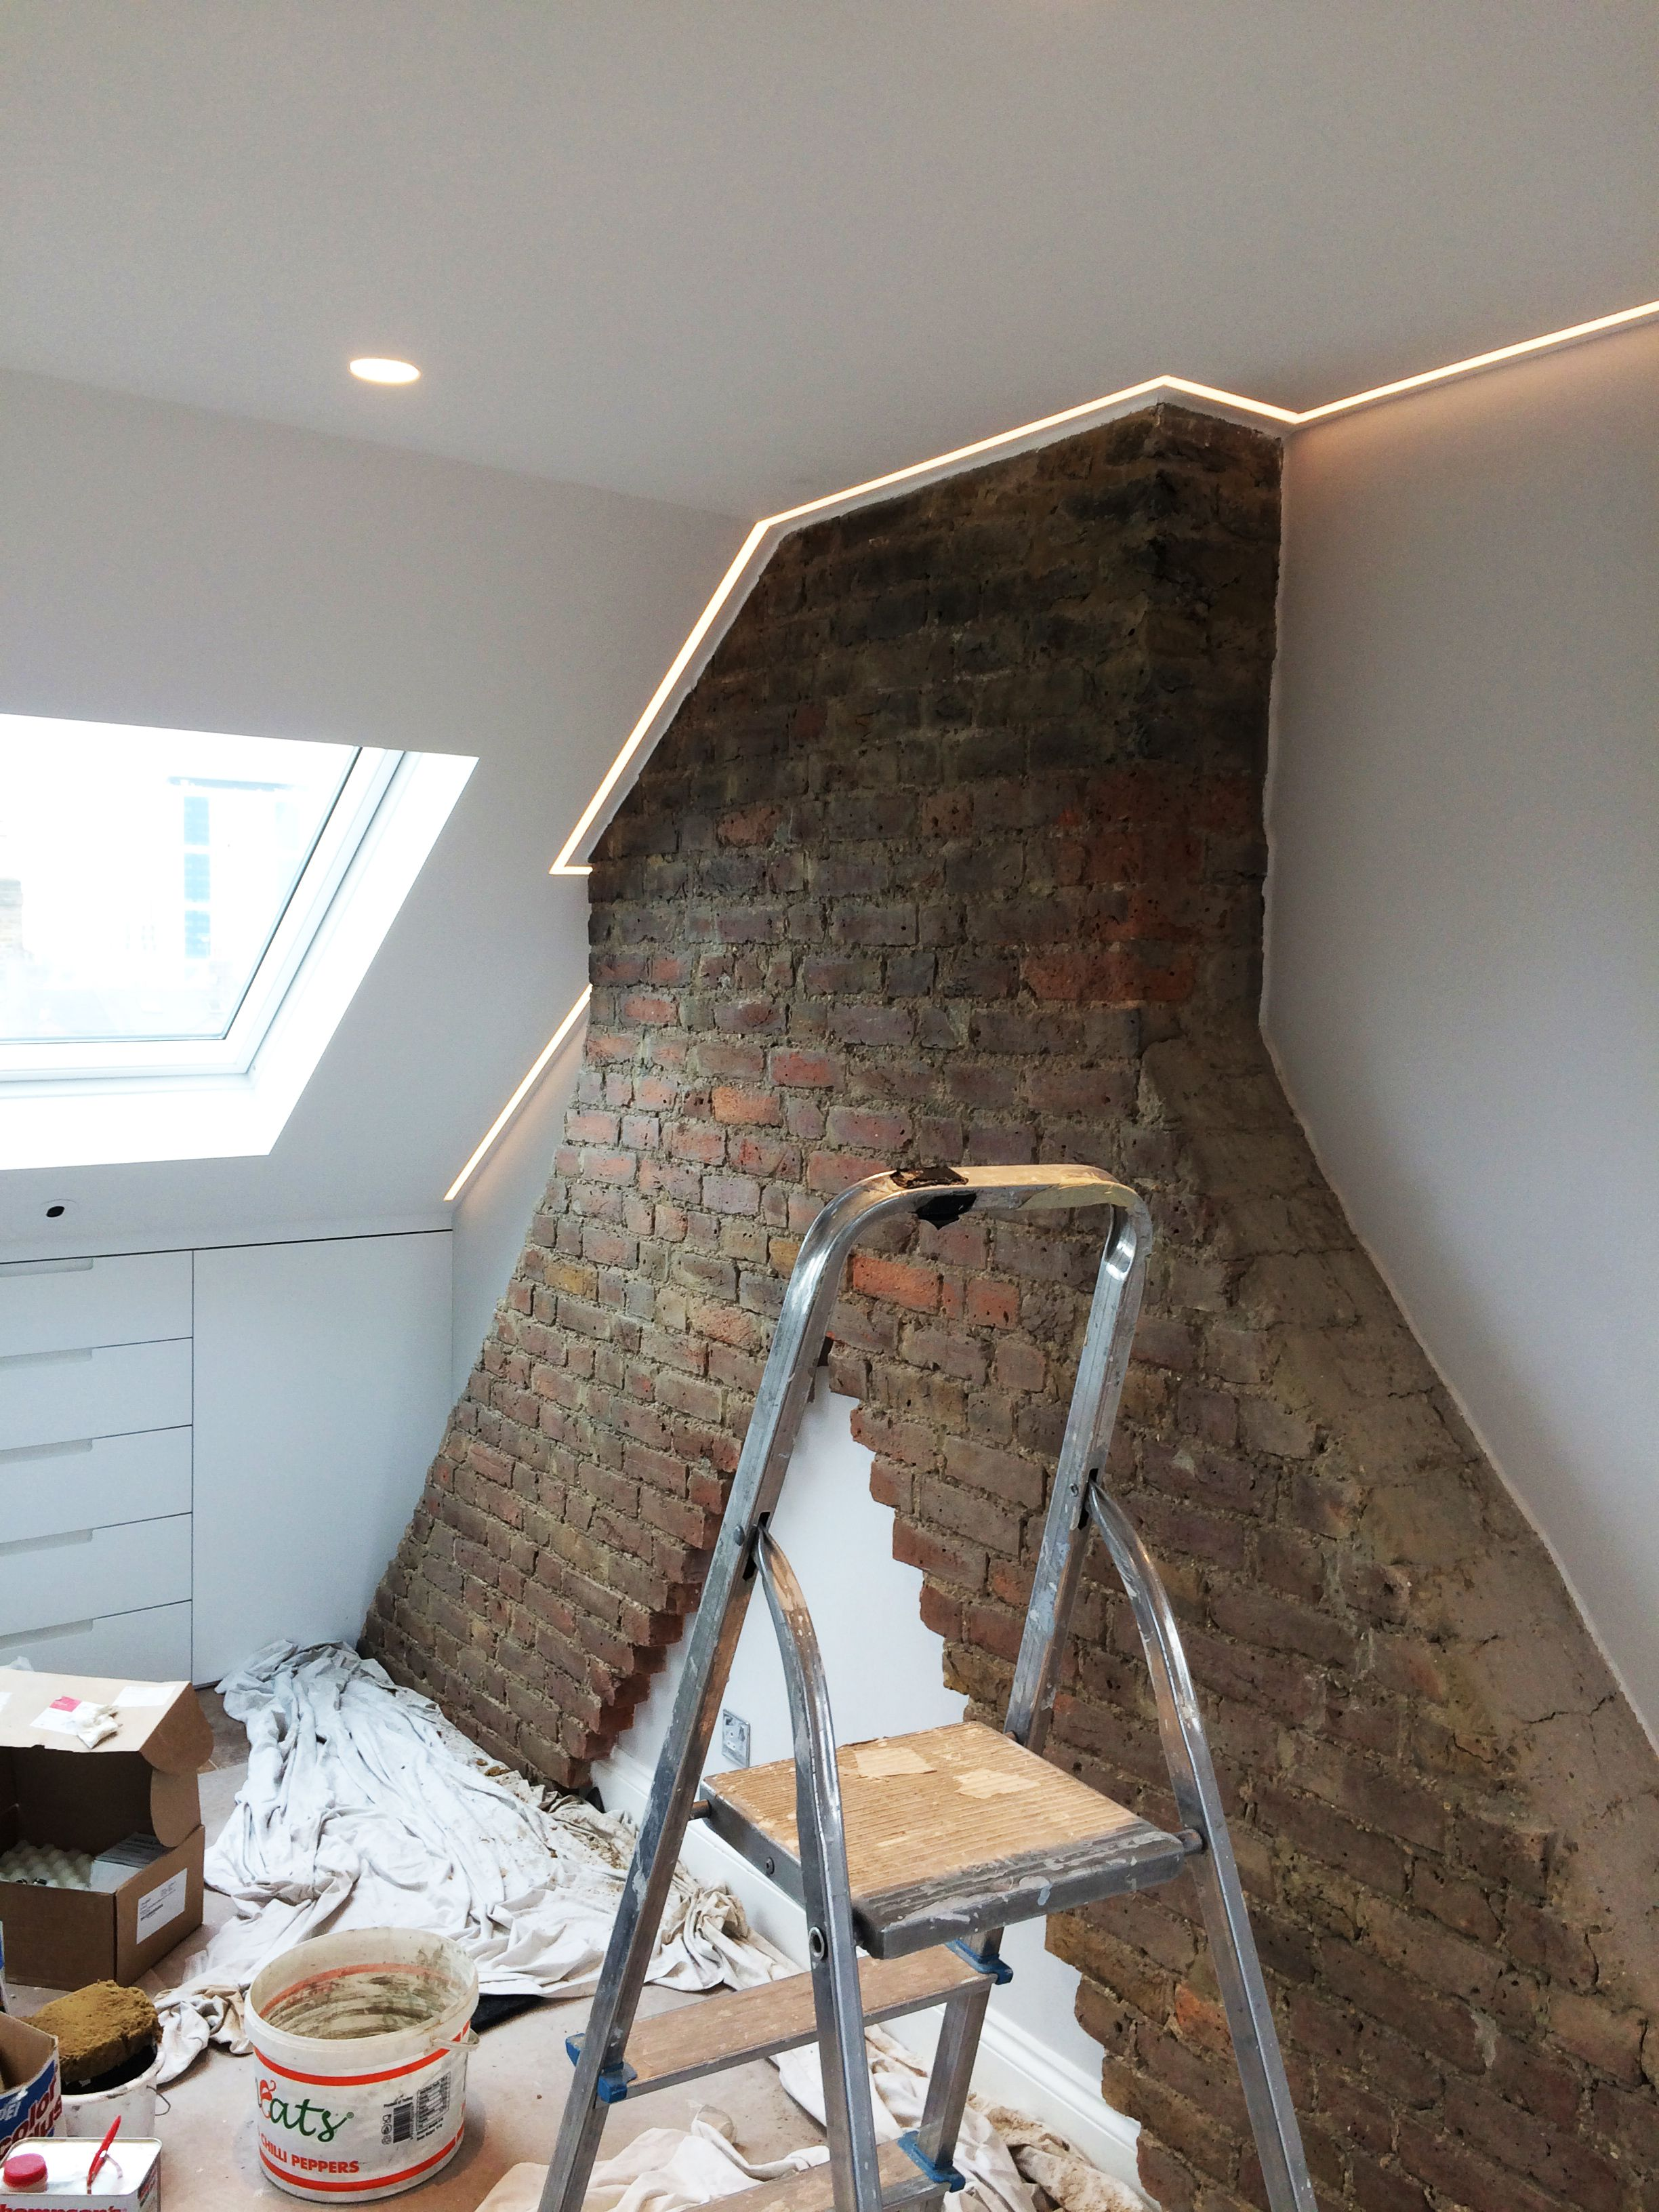 Check out this loft conversion in Wandsworth The chimney breast has